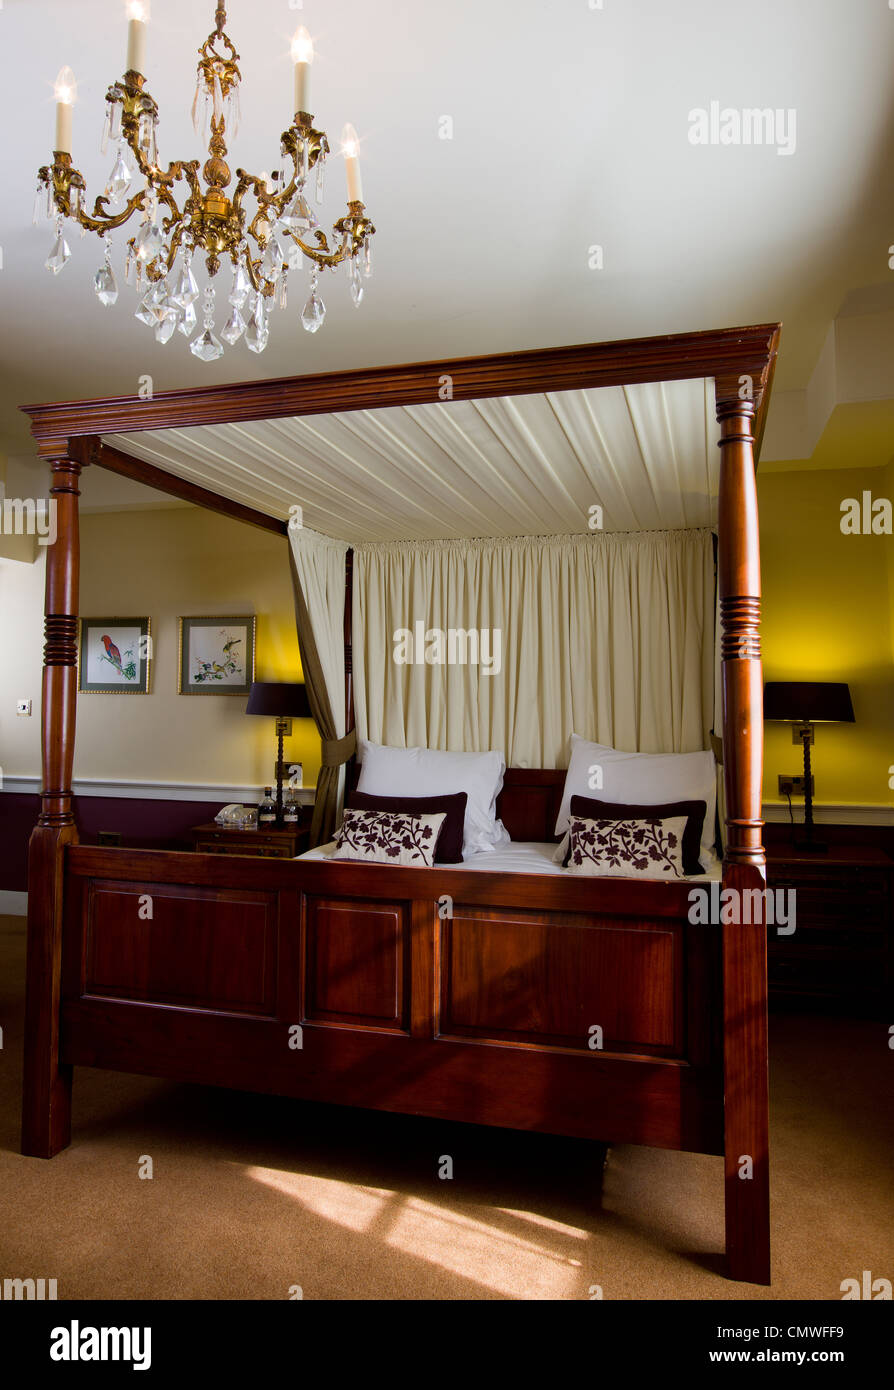 Four Poster Bed In Five Star Hotel Room With Chandelier